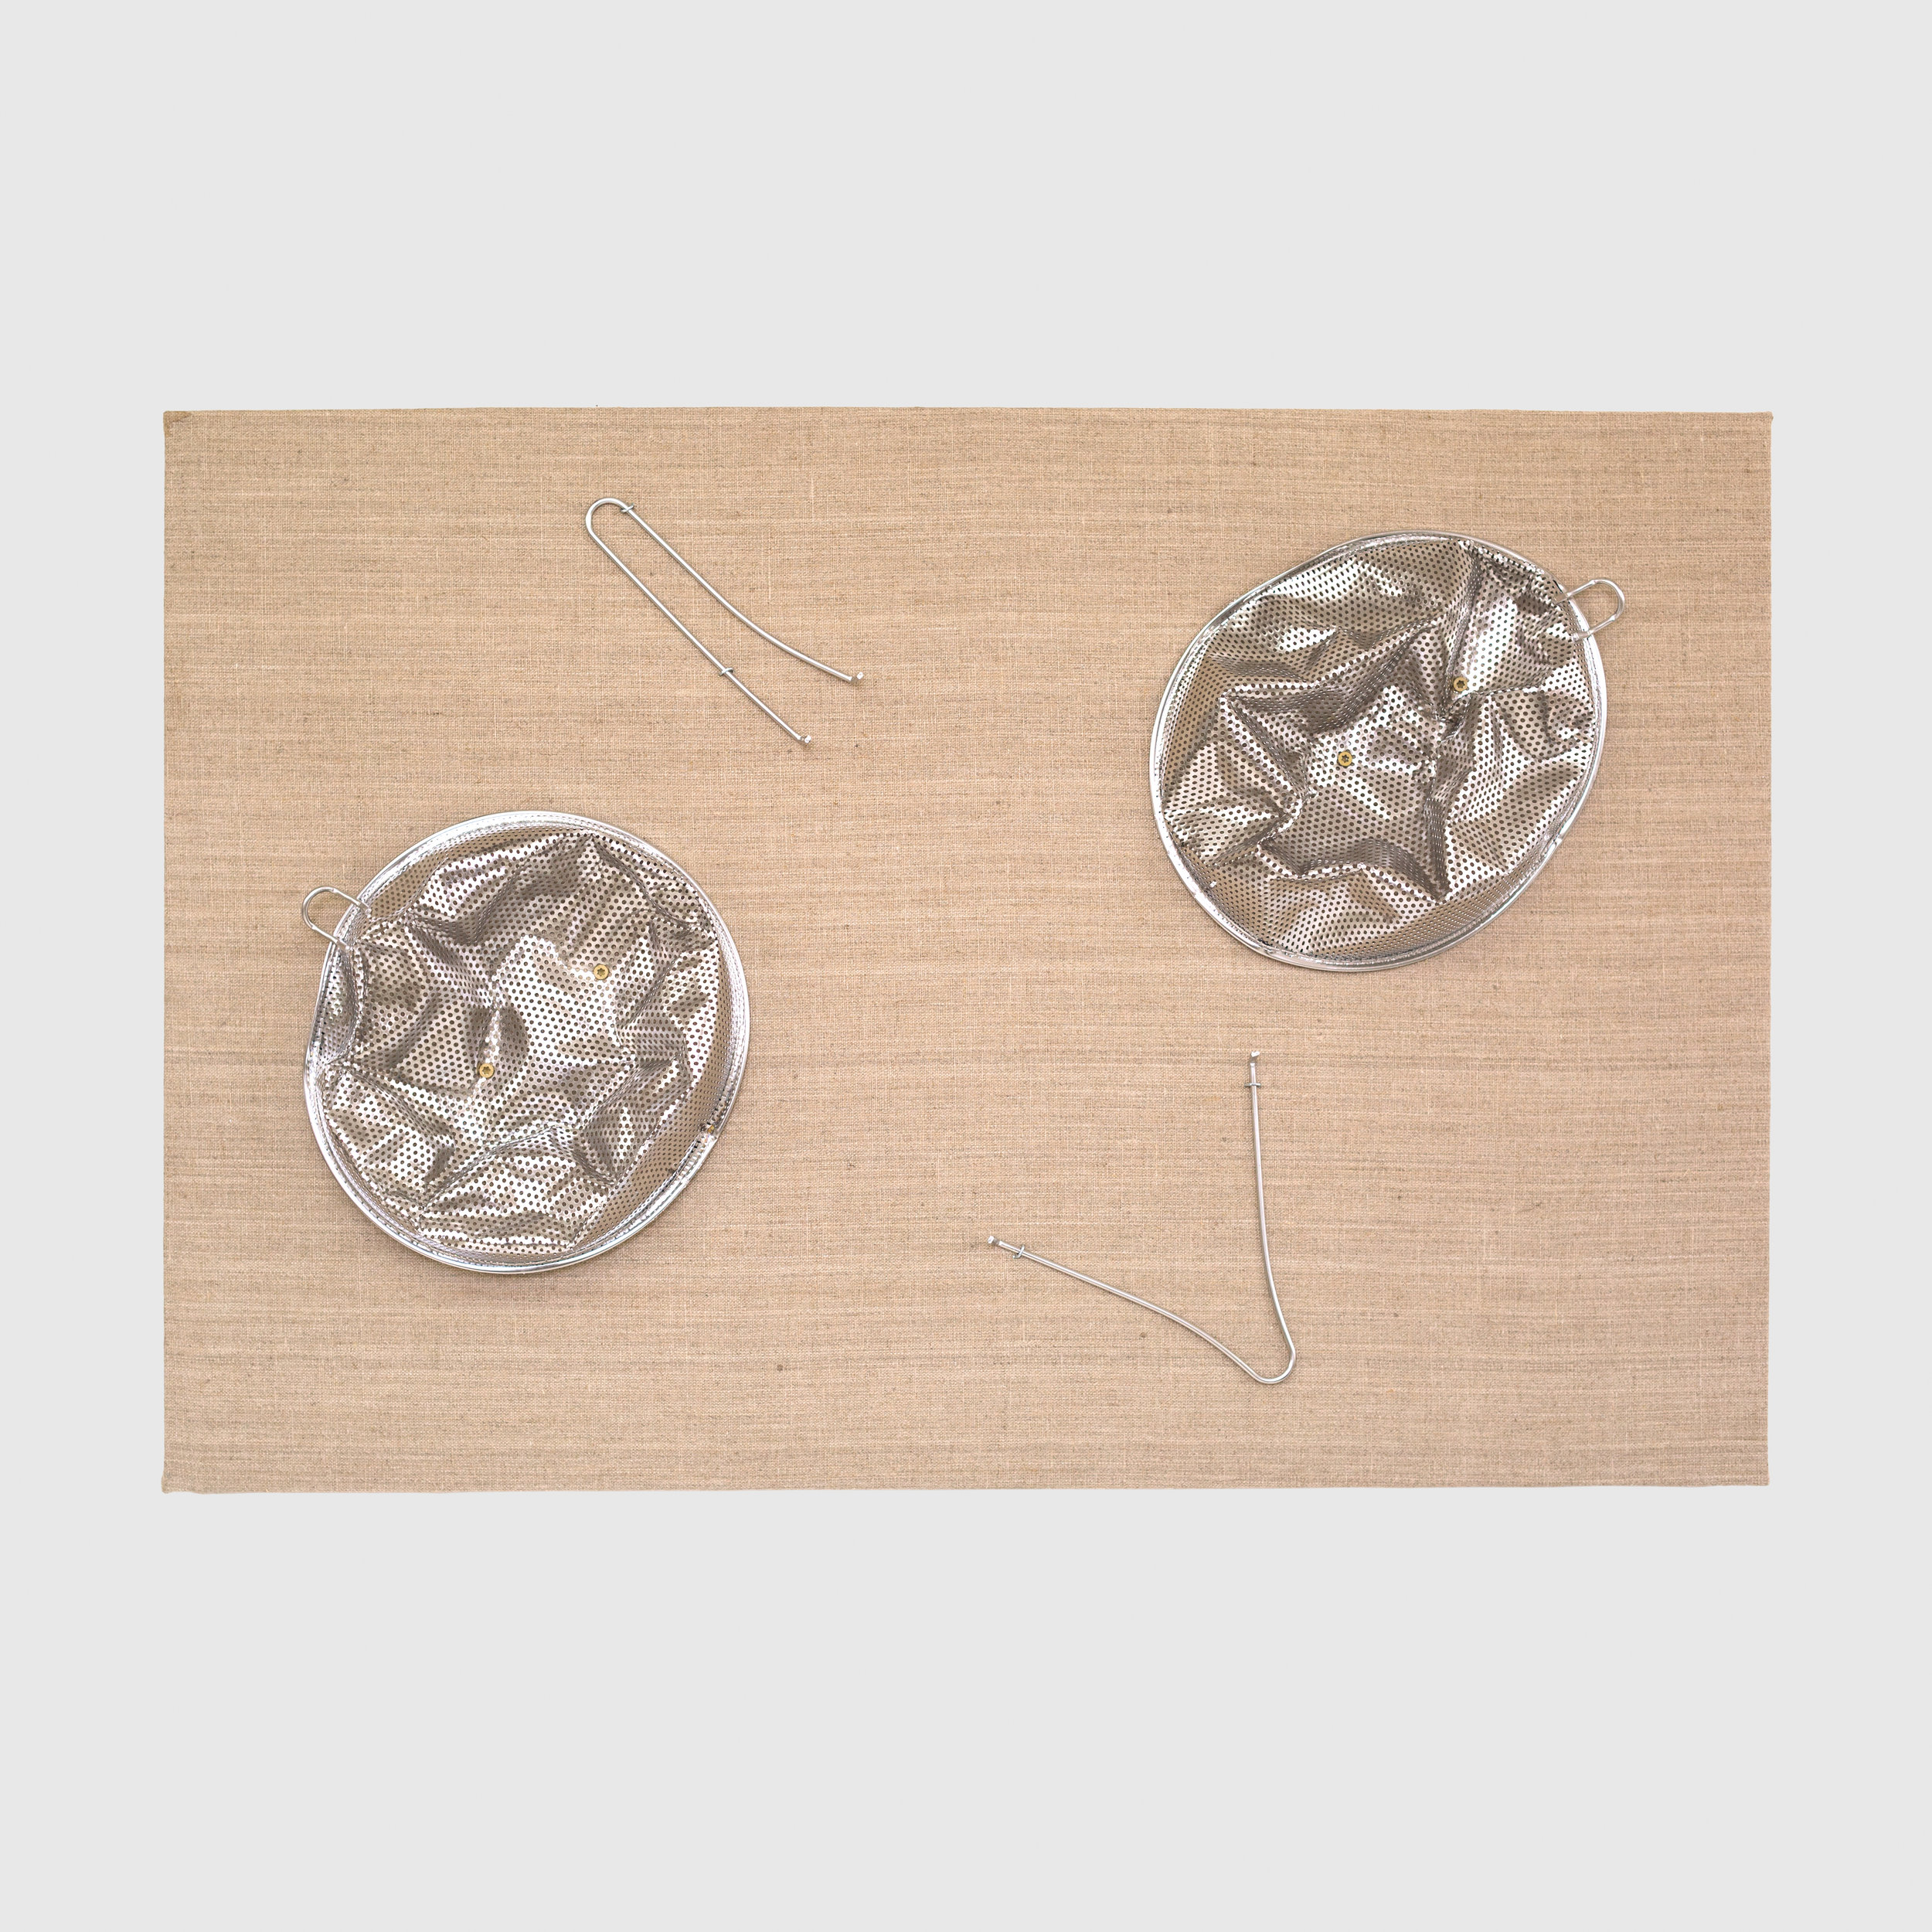 Untitled (Sieve)